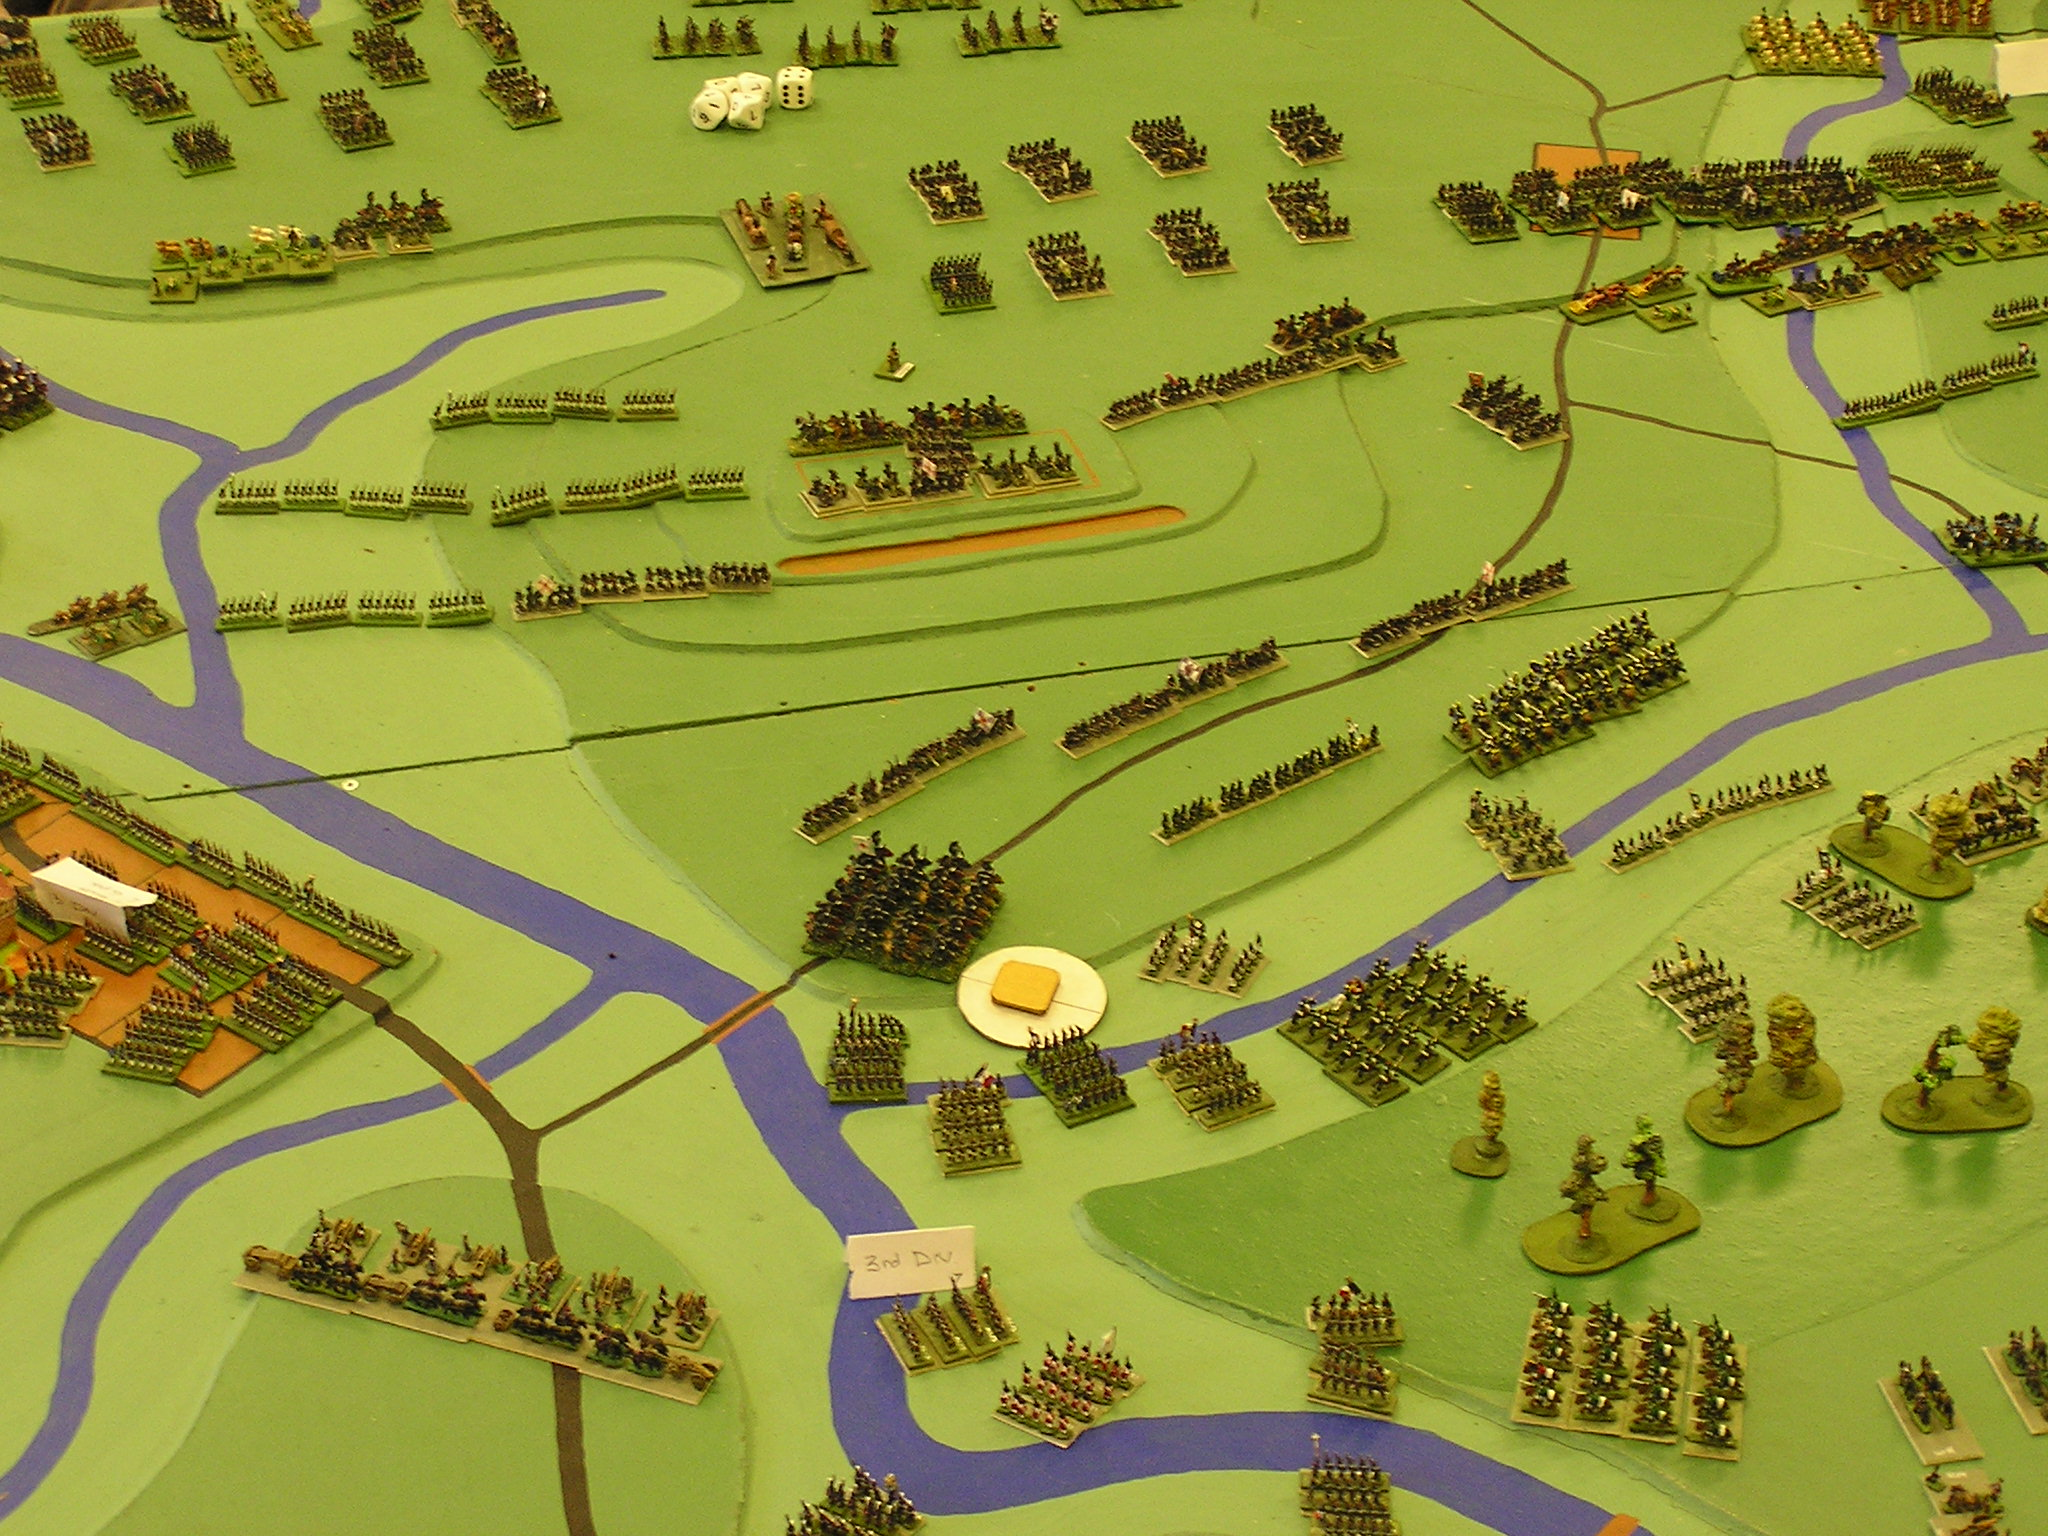 French start assault on Redoubt